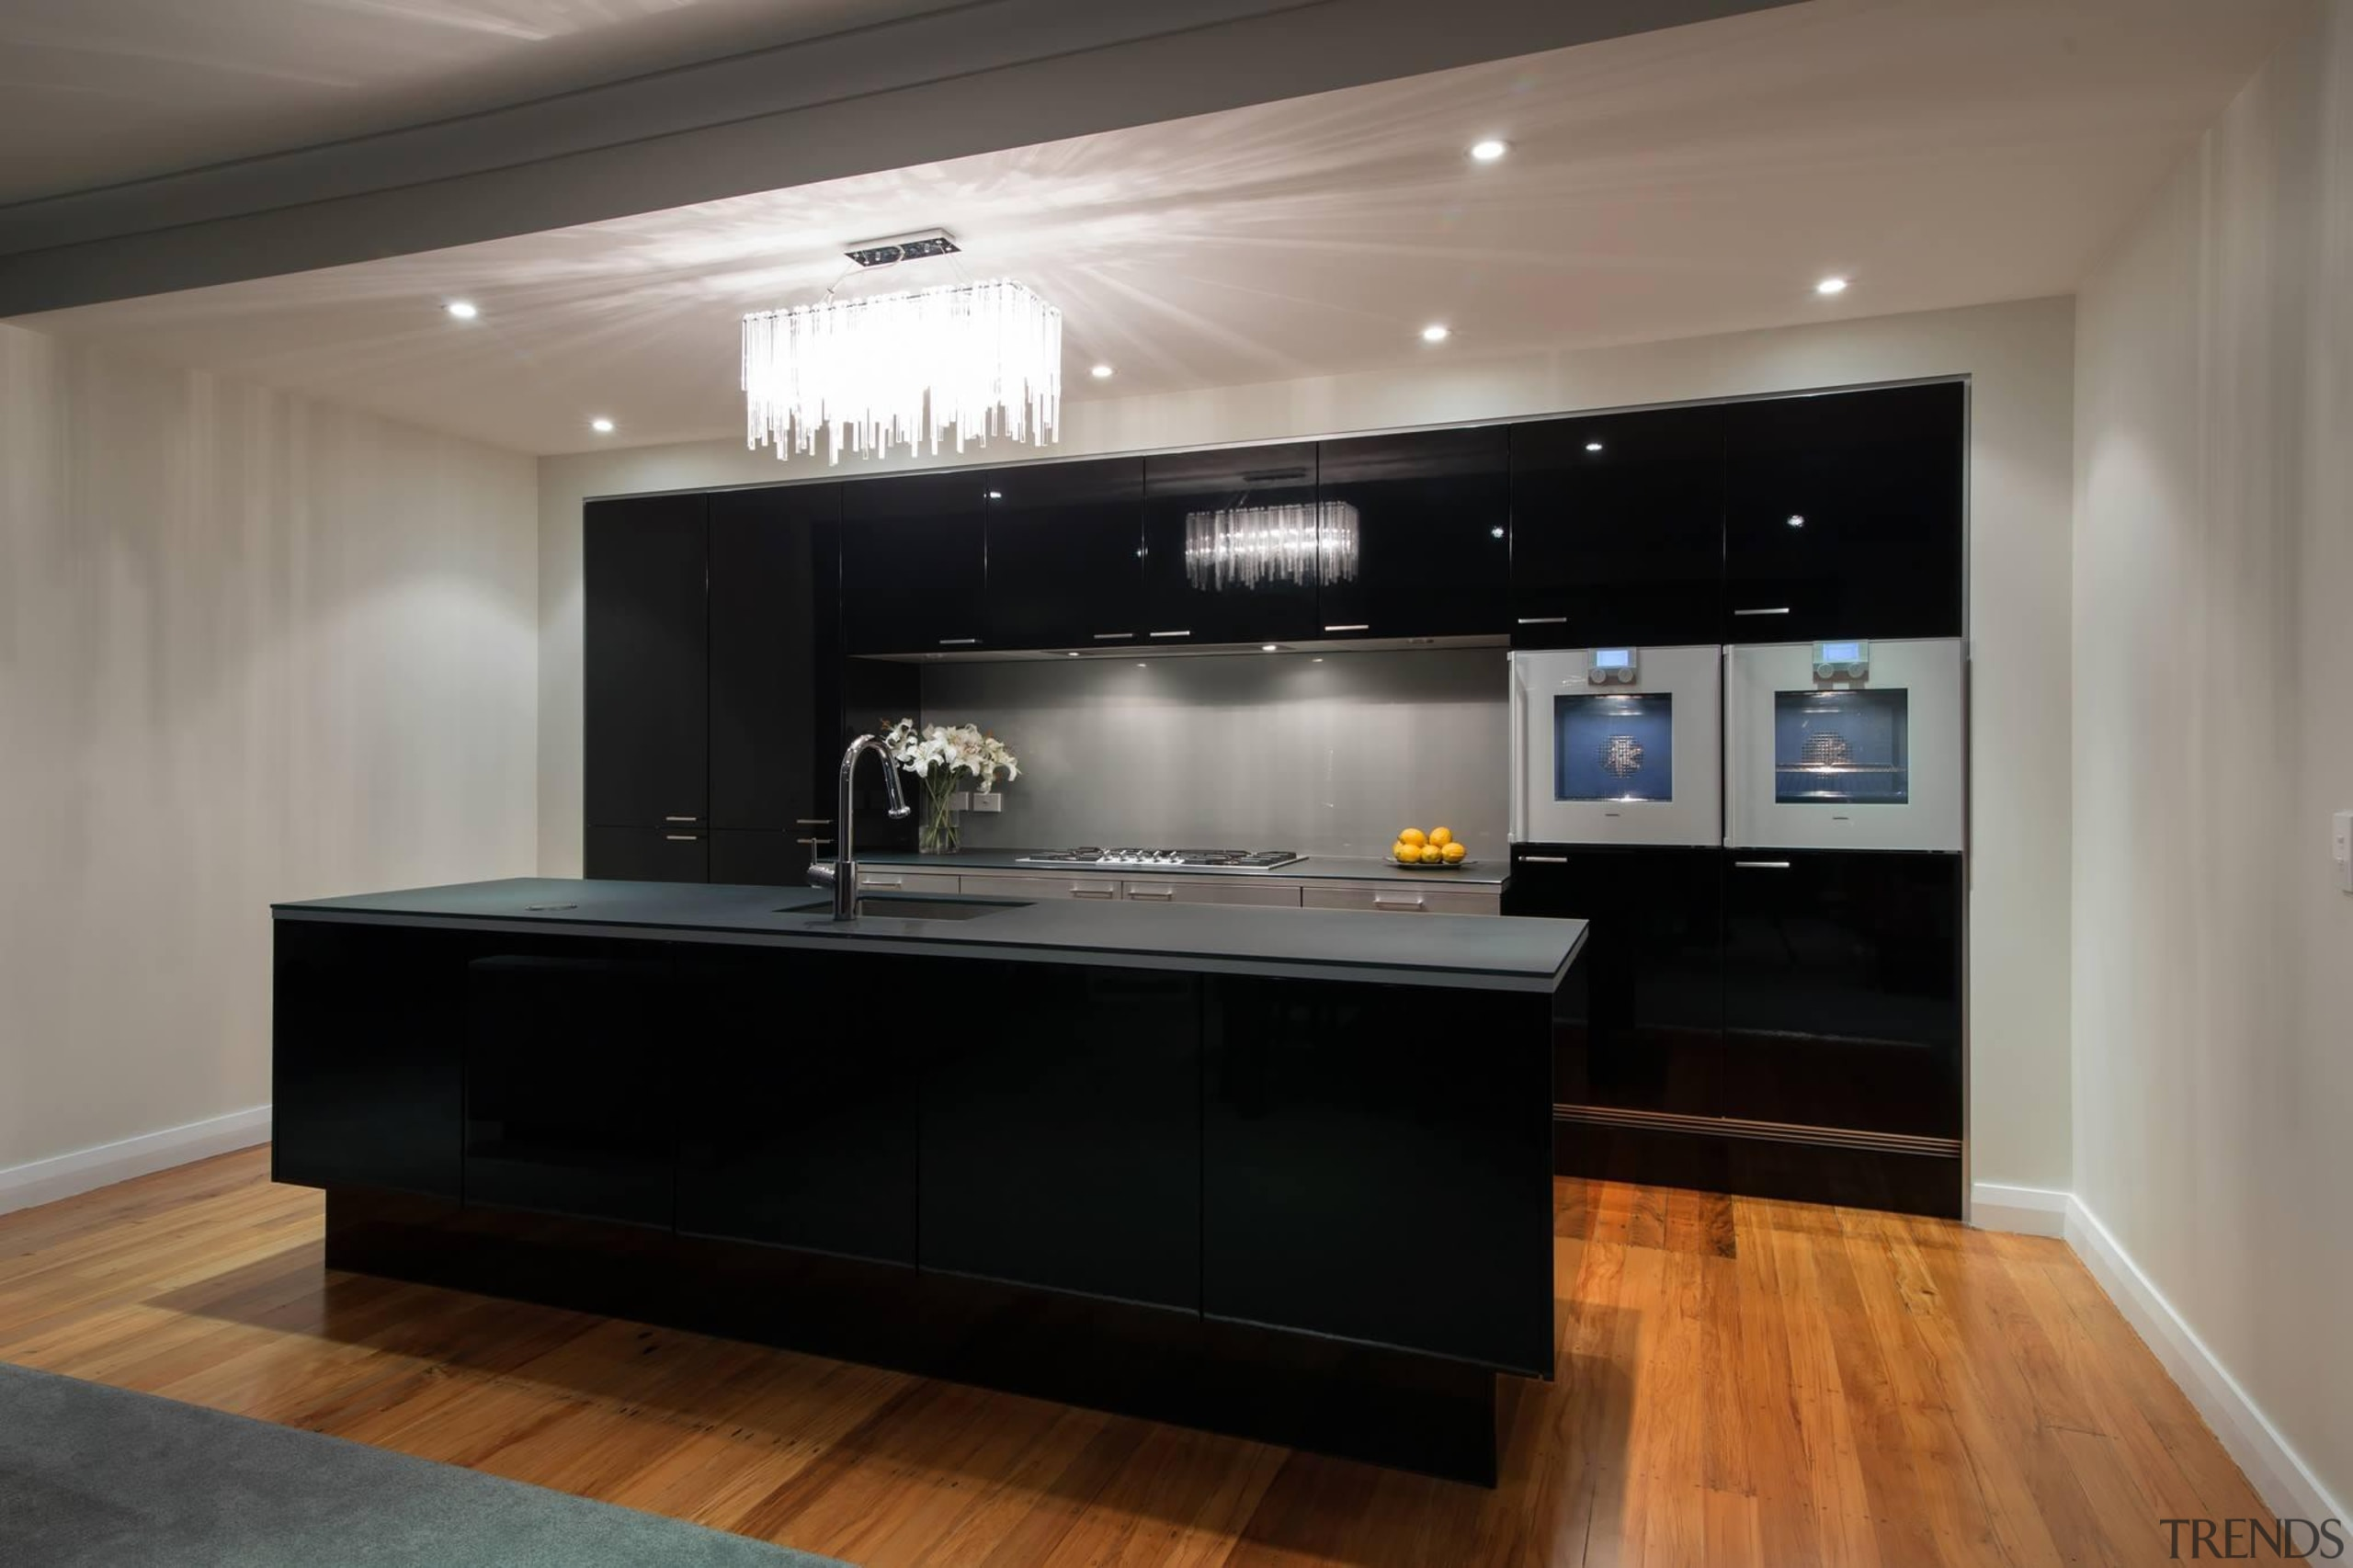 Our Poggenpohl + INTEGRATION kitchenFor more information, please cabinetry, countertop, interior design, kitchen, room, gray, black